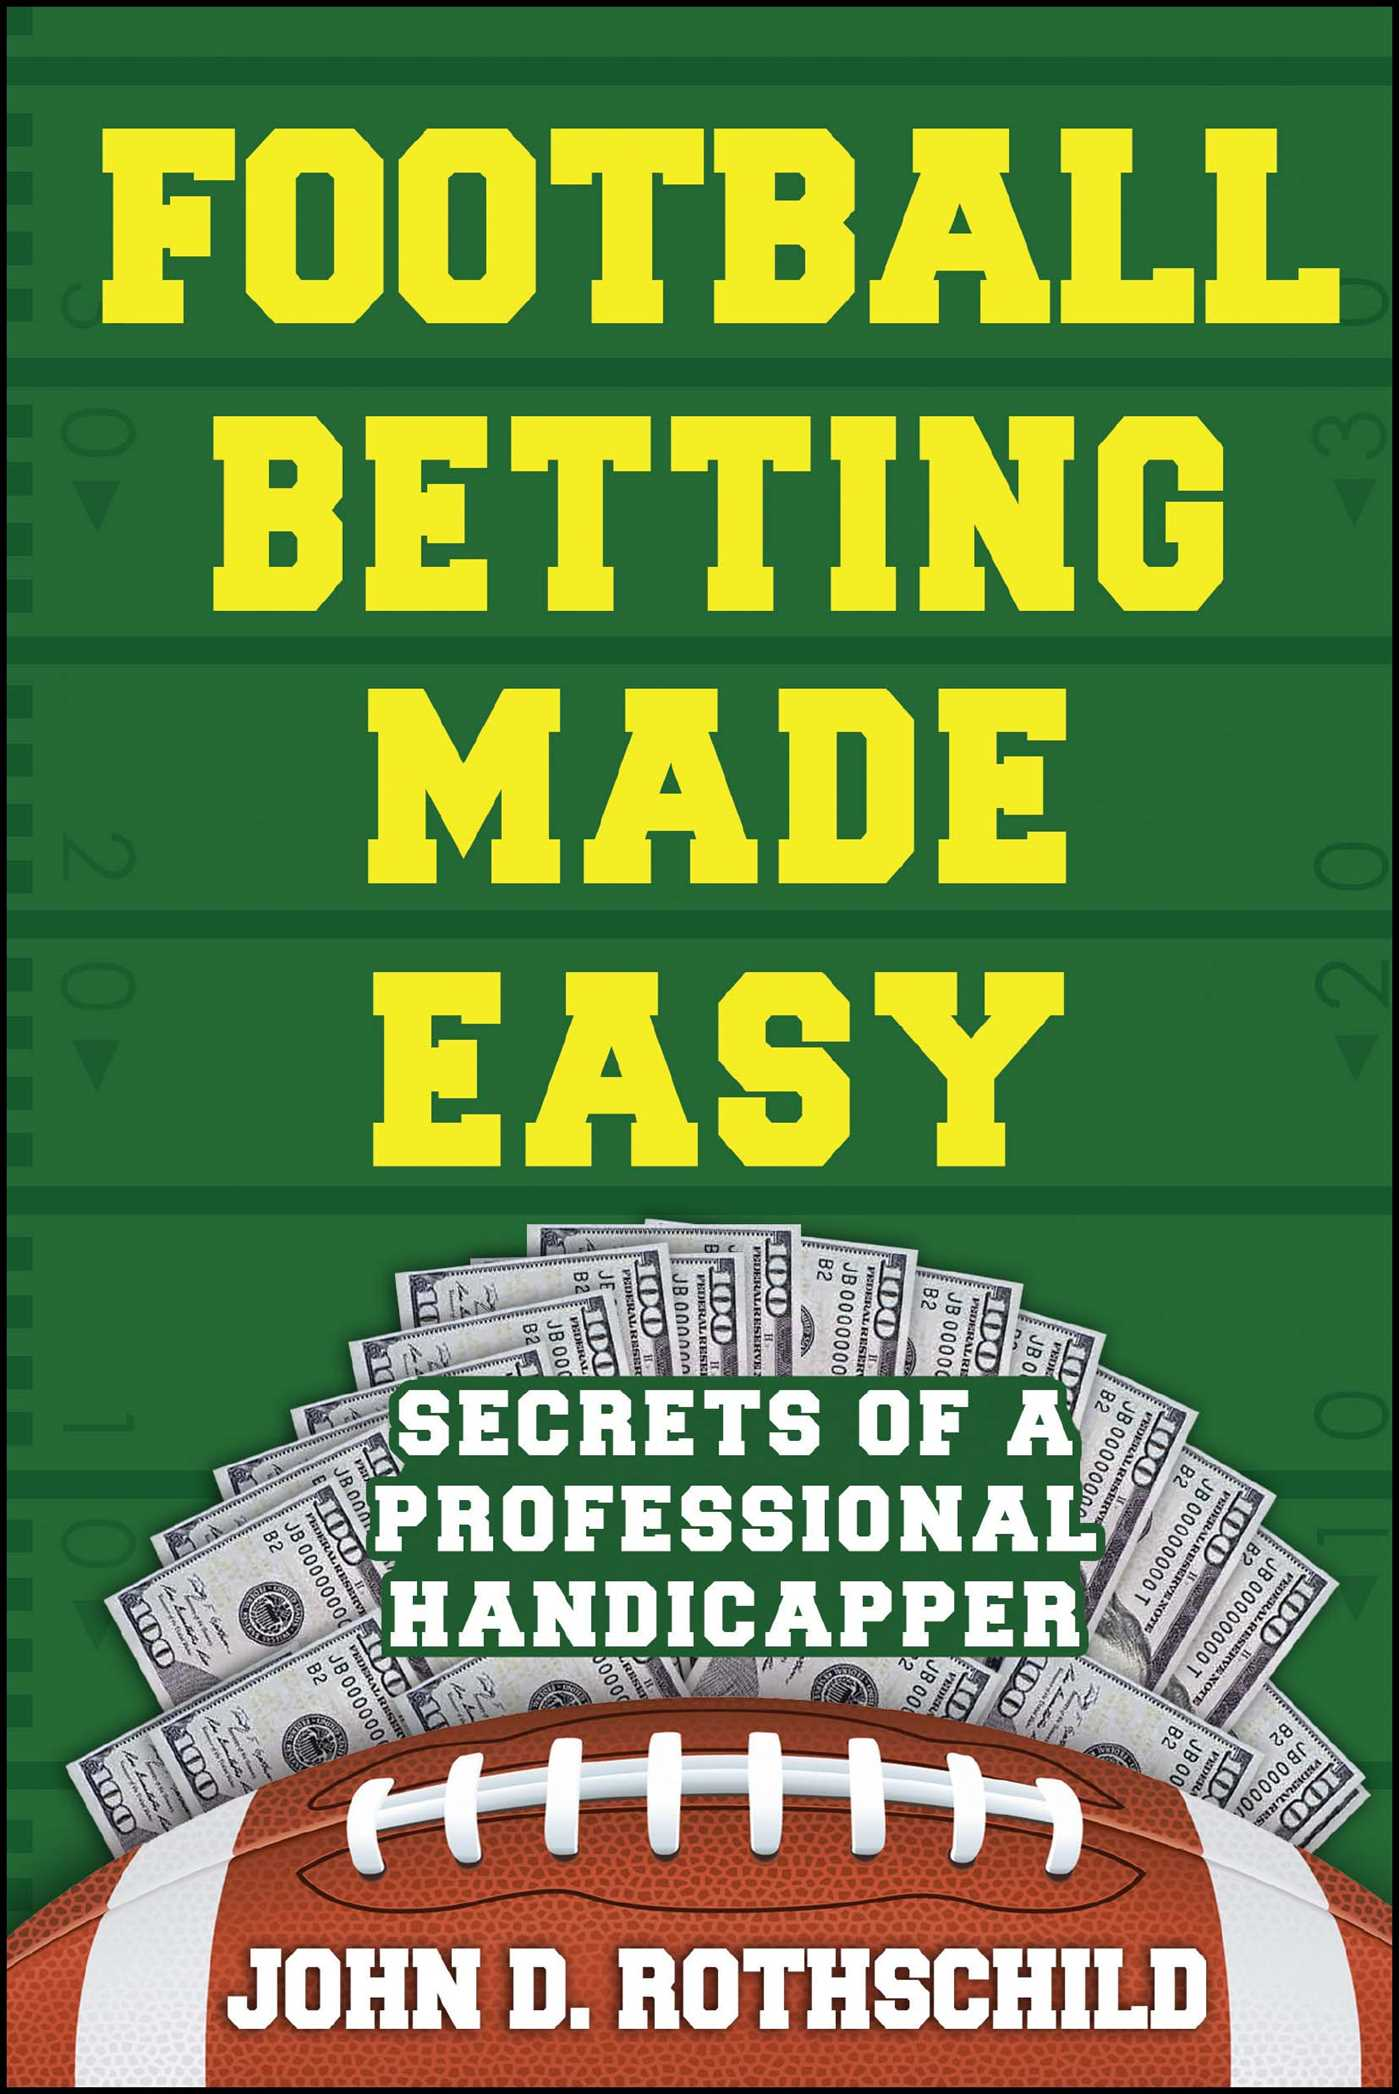 Football Betting Made Easy | Book by John D. Rothschild | Official  Publisher Page | Simon & Schuster